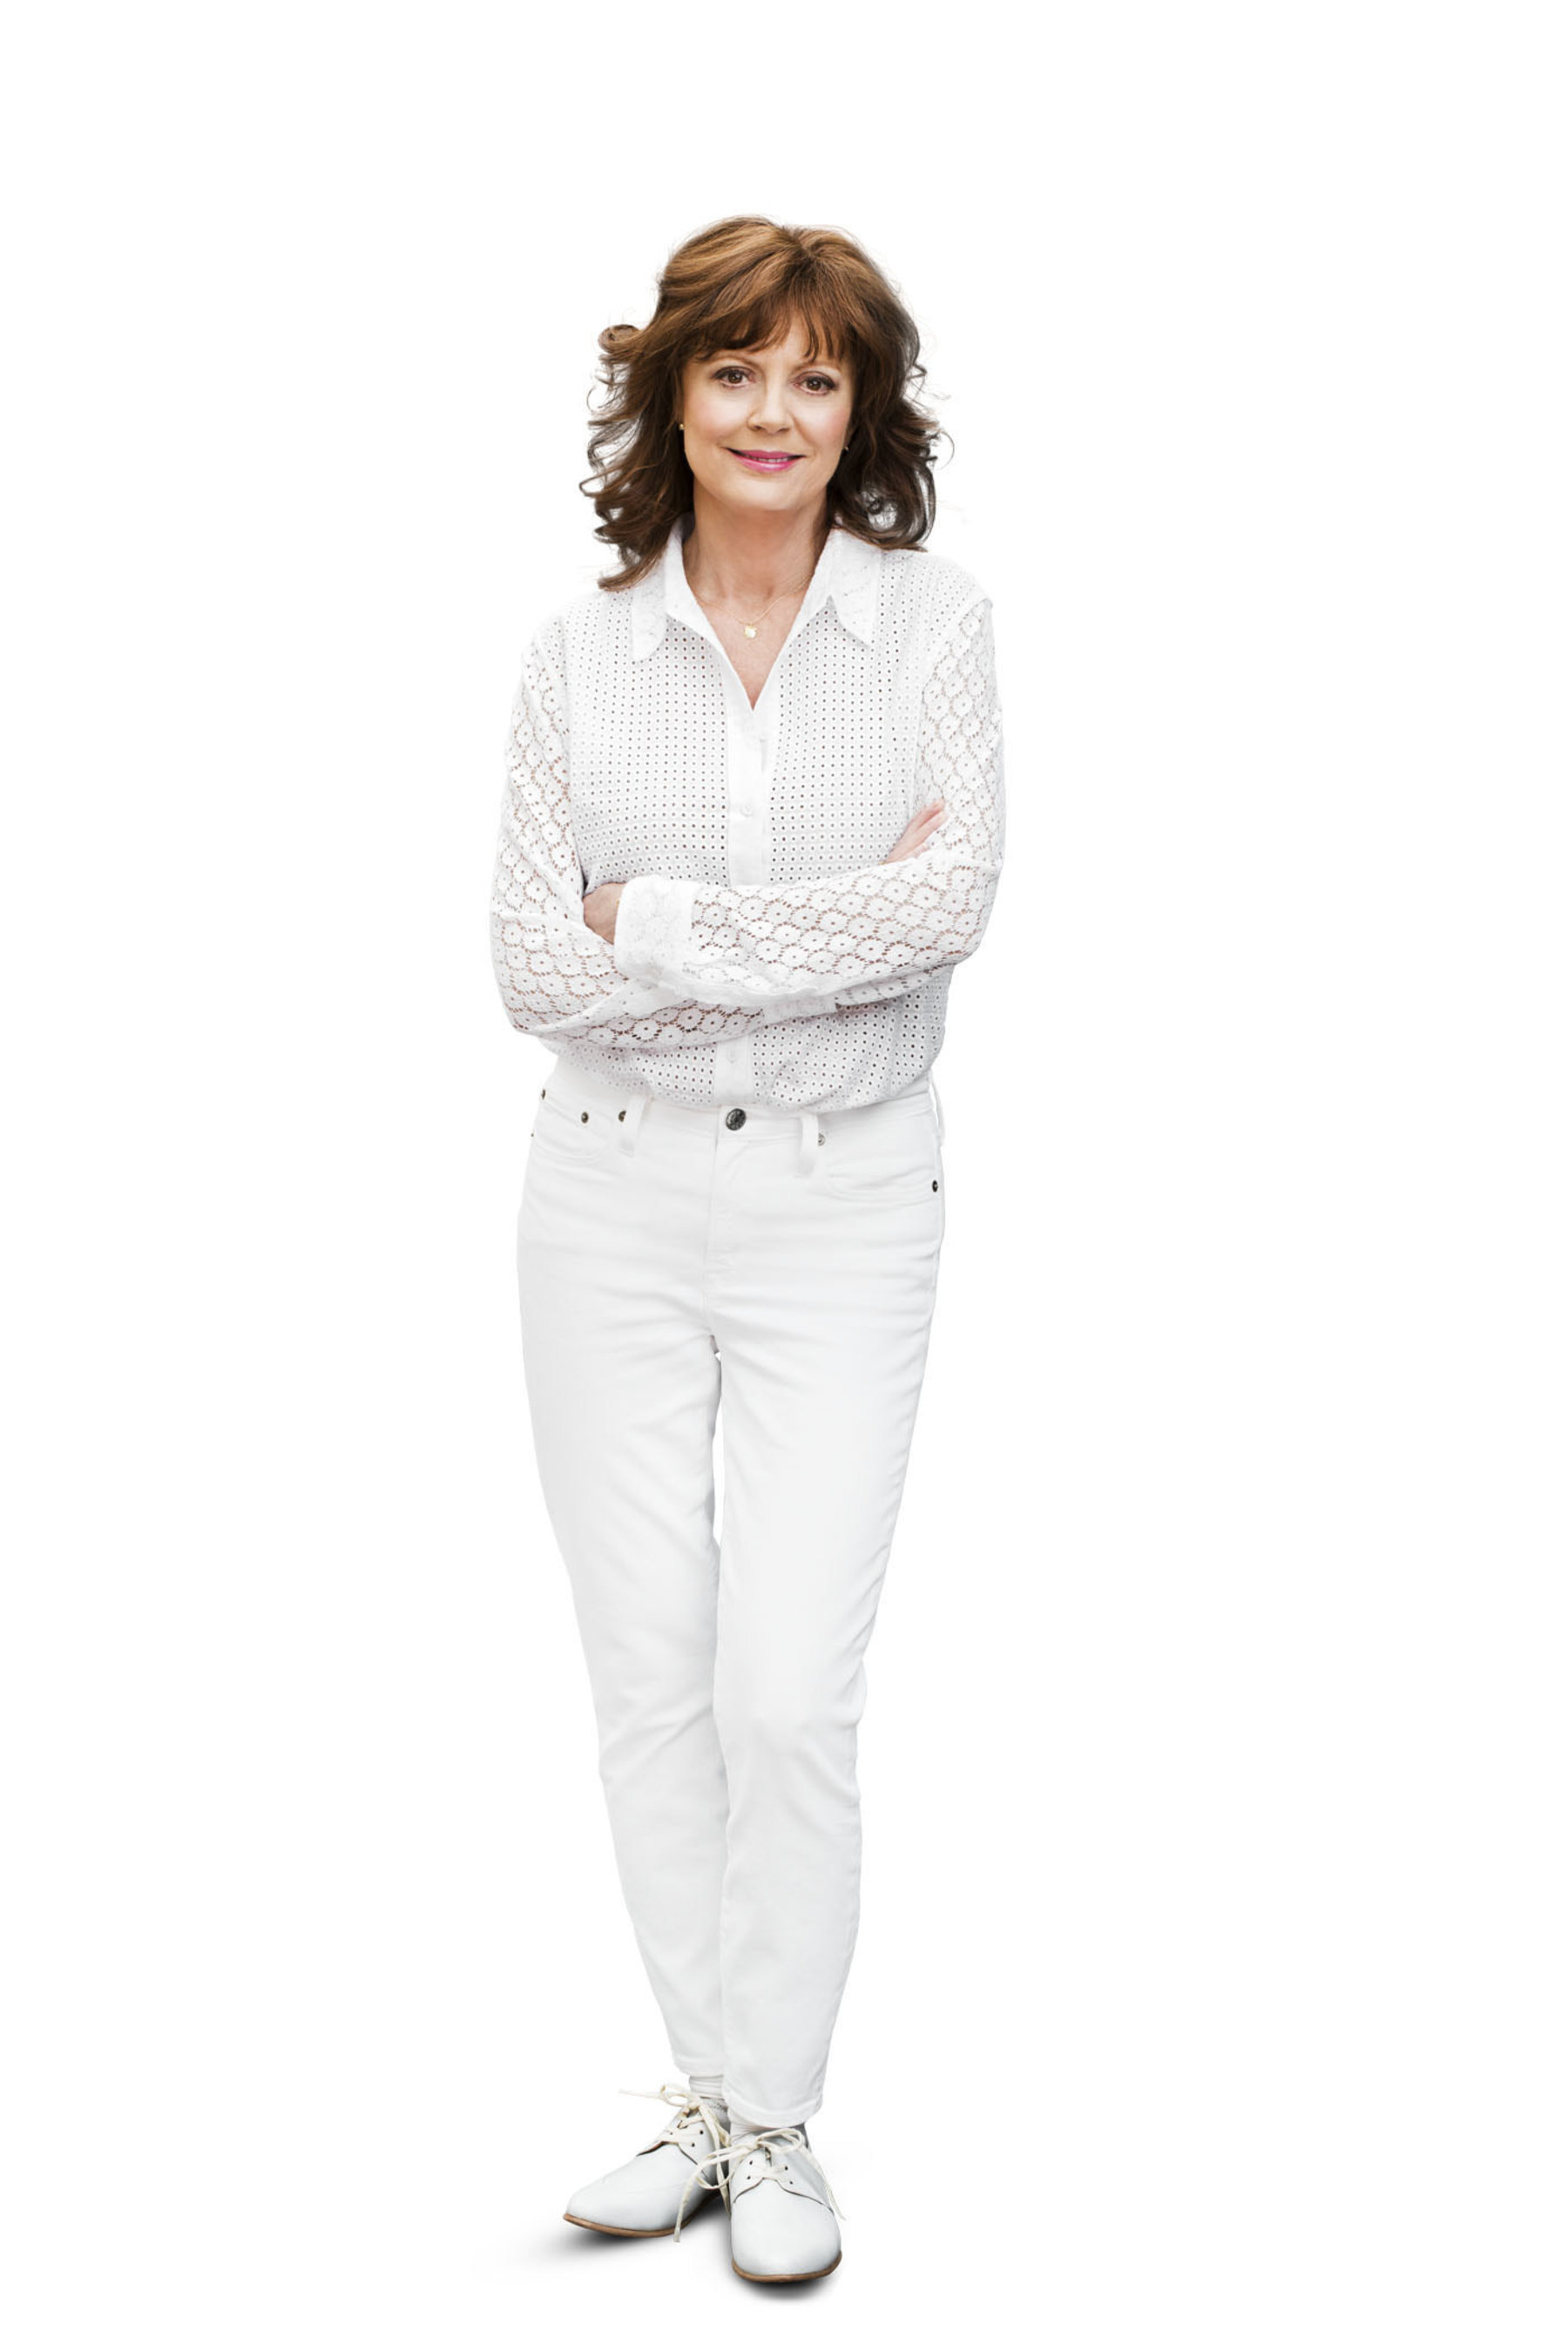 """May 14, 2015- Academy Award winner Susan Sarandon and InnovAge launch the """"Aging in Place"""" campaign to create awareness of resources to help aging adults live as long as possible in their homes and communities. Susan shares her personal story as a caregiver to her 92 year-old mother at www.InnovAgeCares.com."""